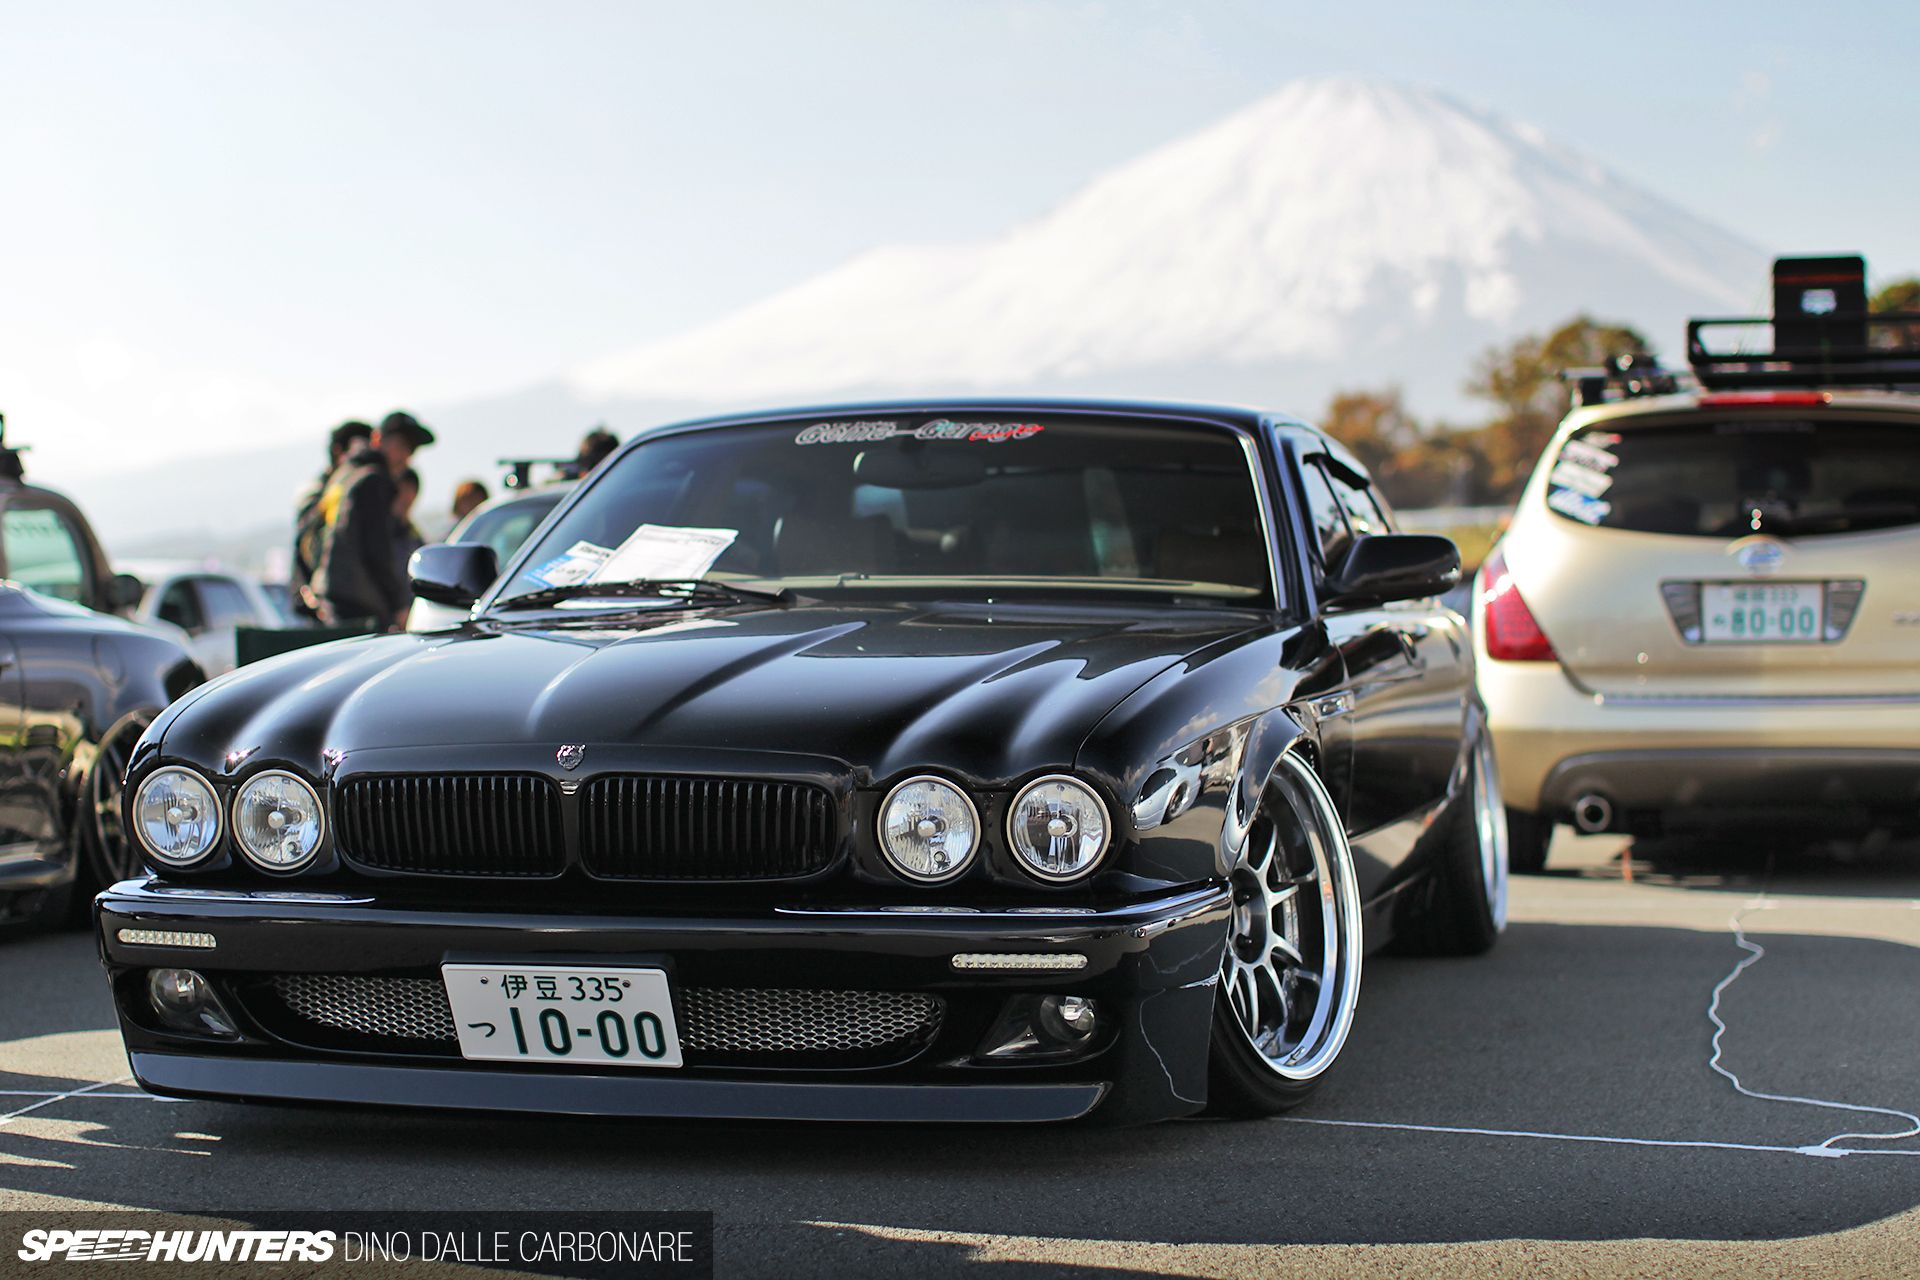 Pin By Drift Under The Radar On Bippu Sedans Jaguar Xj